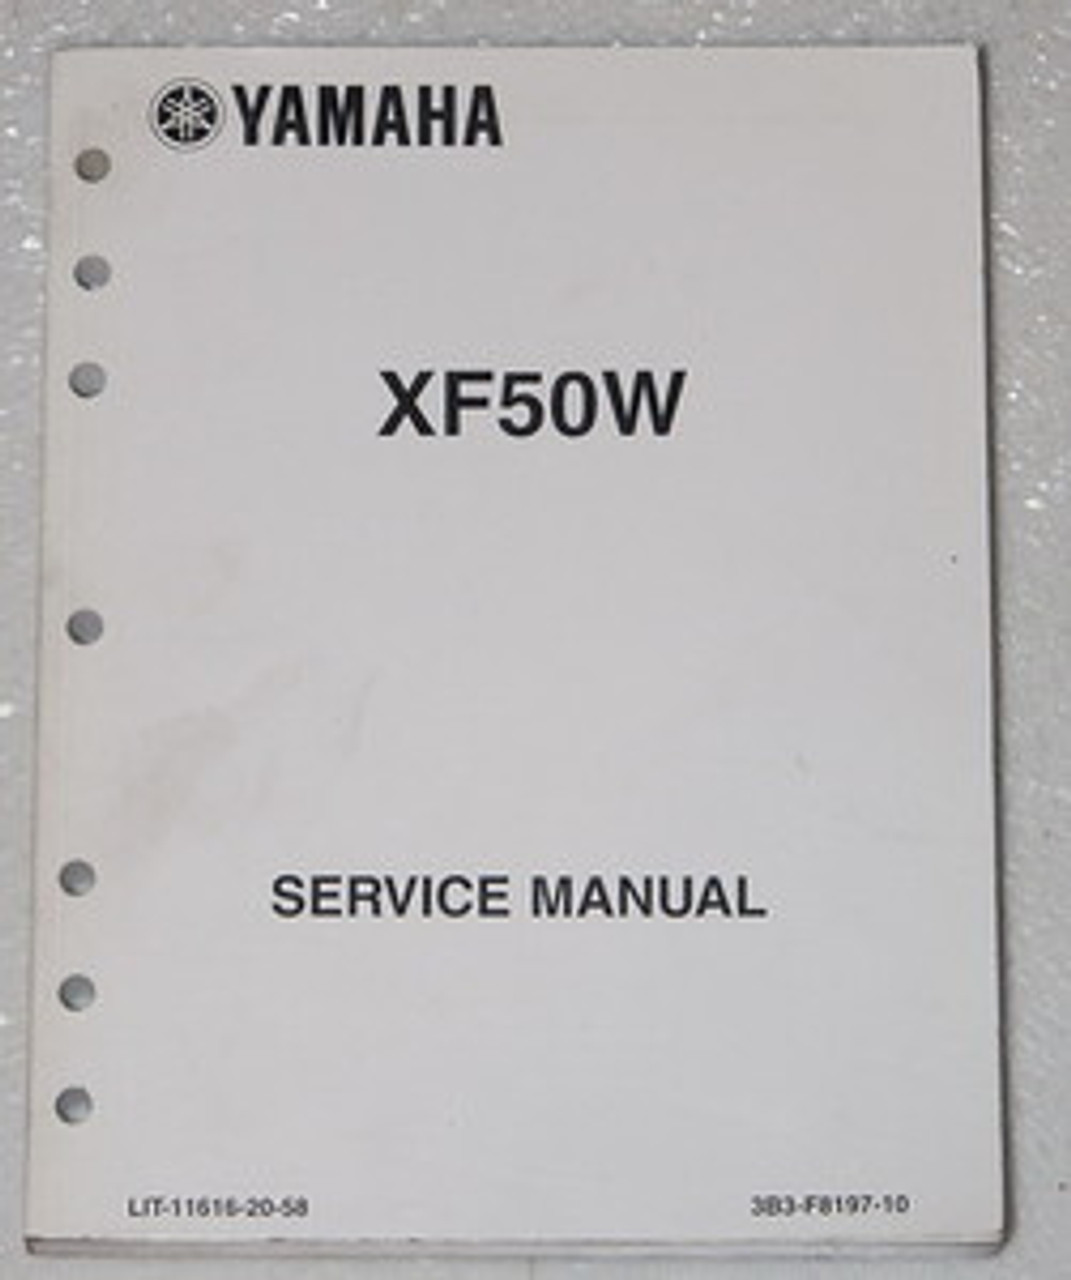 Motorcycle Service & Repair Manuals 2007 Yamaha C3 Scooter XF50W ...